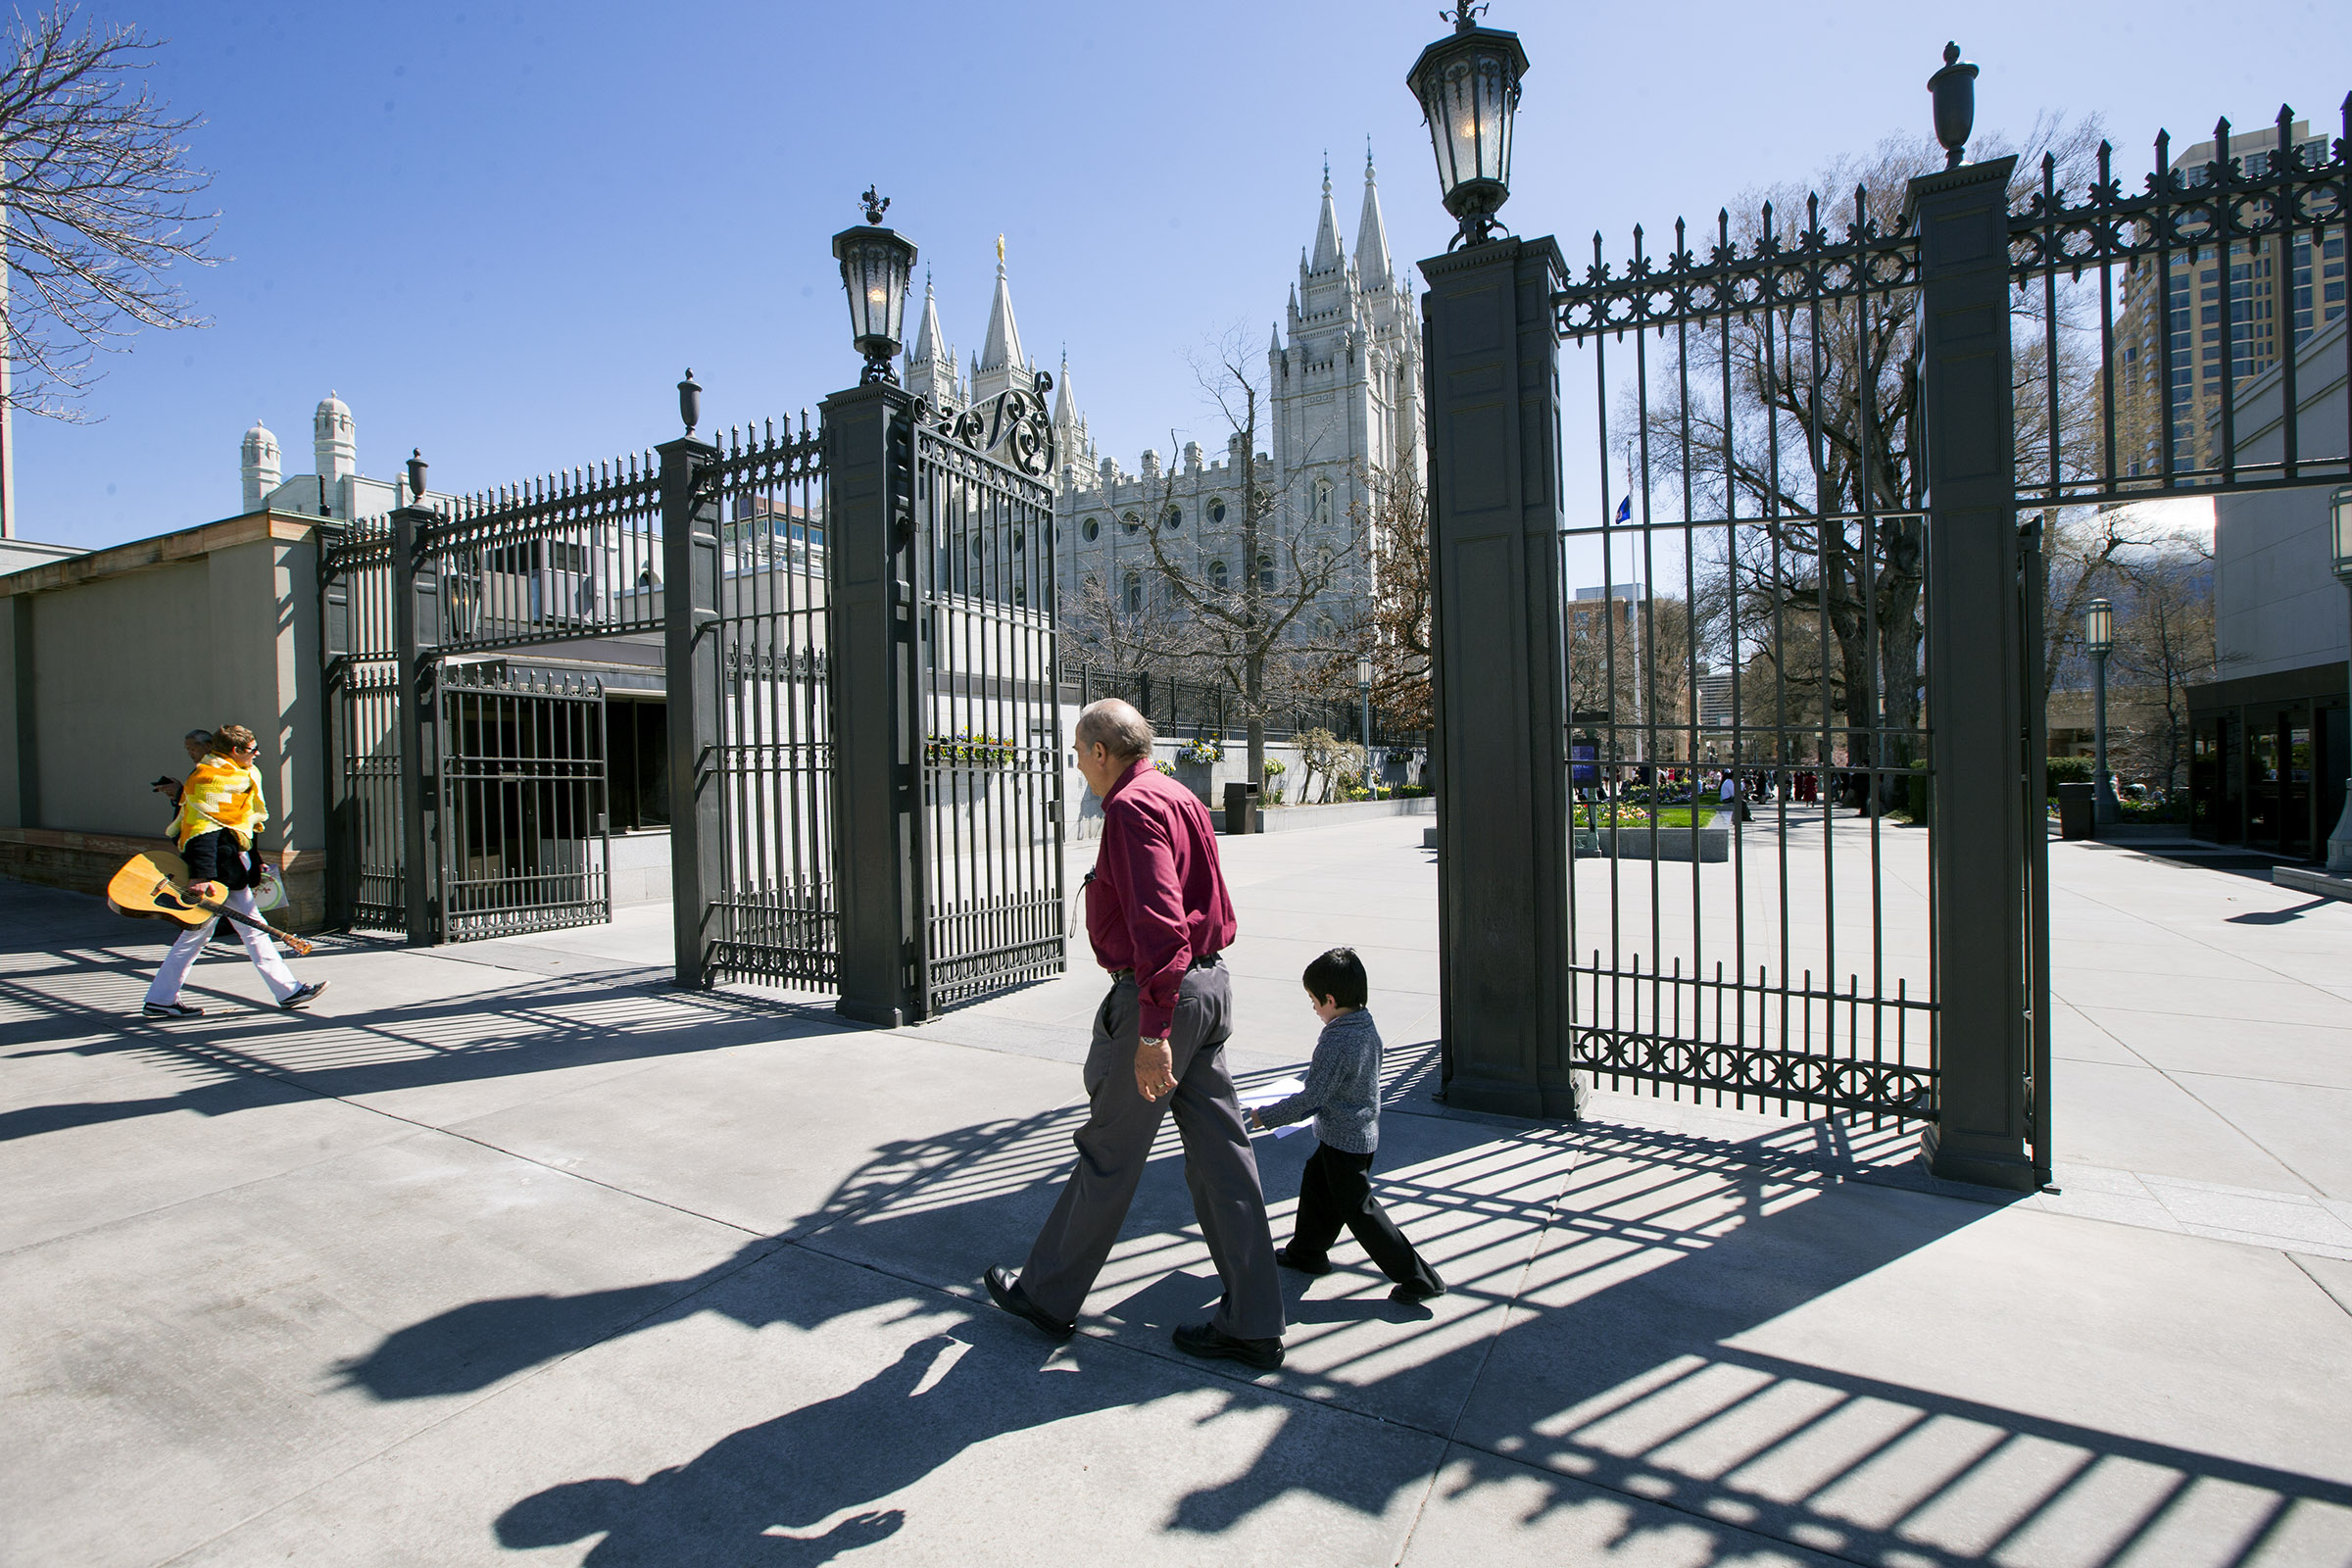 The gates to Temple Square during the 188th Annual General Conference of The Church of Jesus Christ of Latter-day Saints in Salt Lake City on Sunday, April 1, 2018.